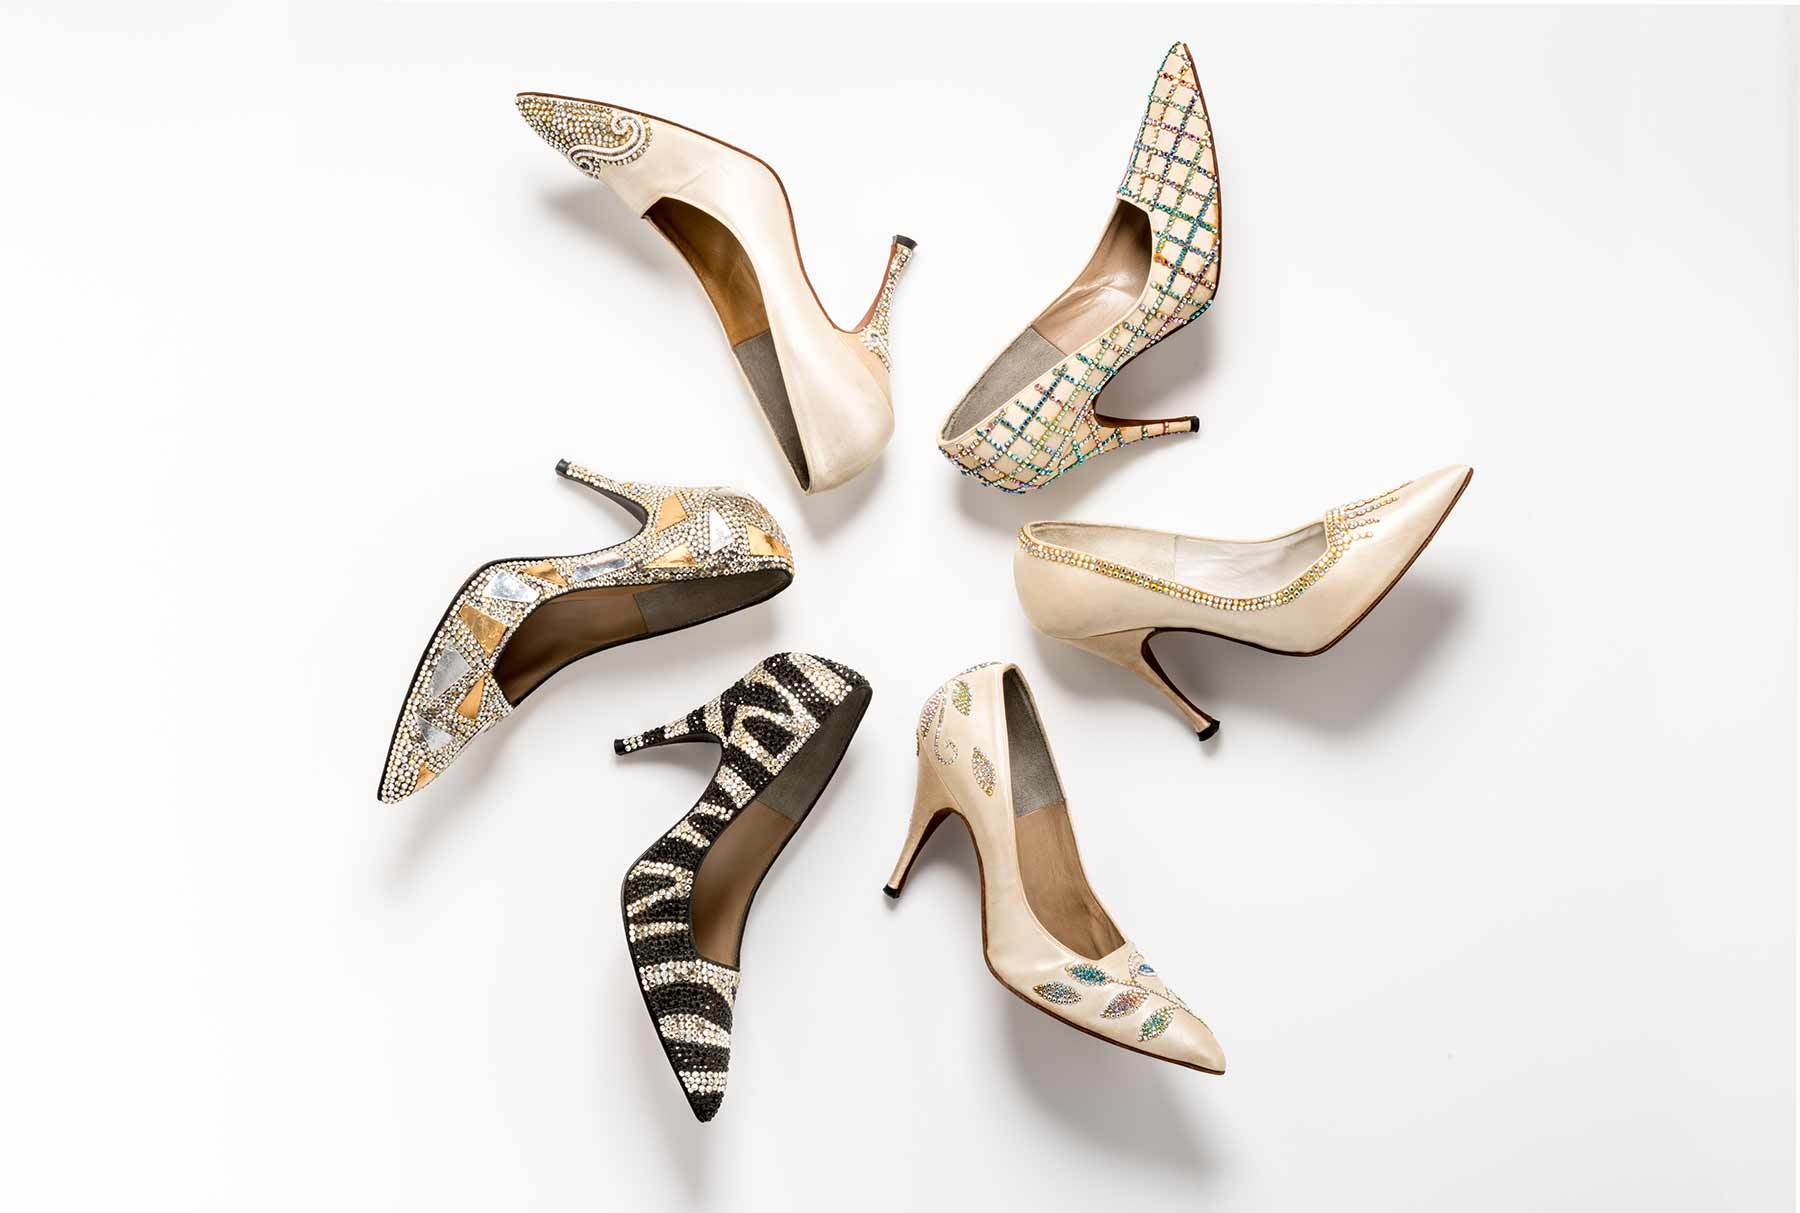 shoes in fashion and design gallery